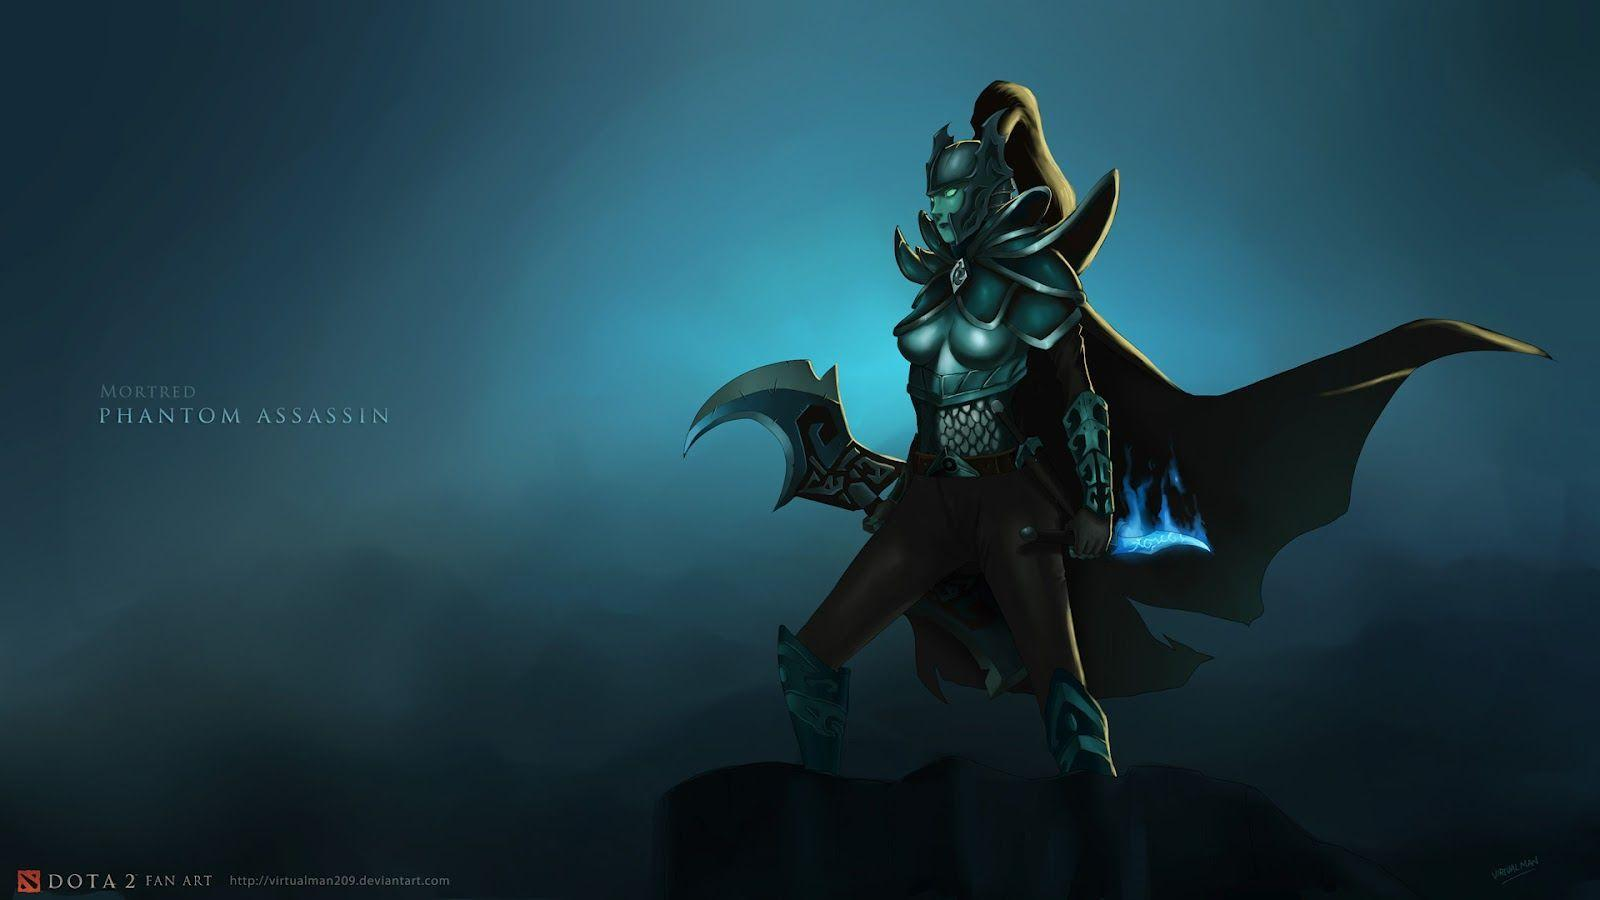 Hd wallpaper dota 2 - Dota 2 Hd Wallpapers Hd Wallpapers Inn